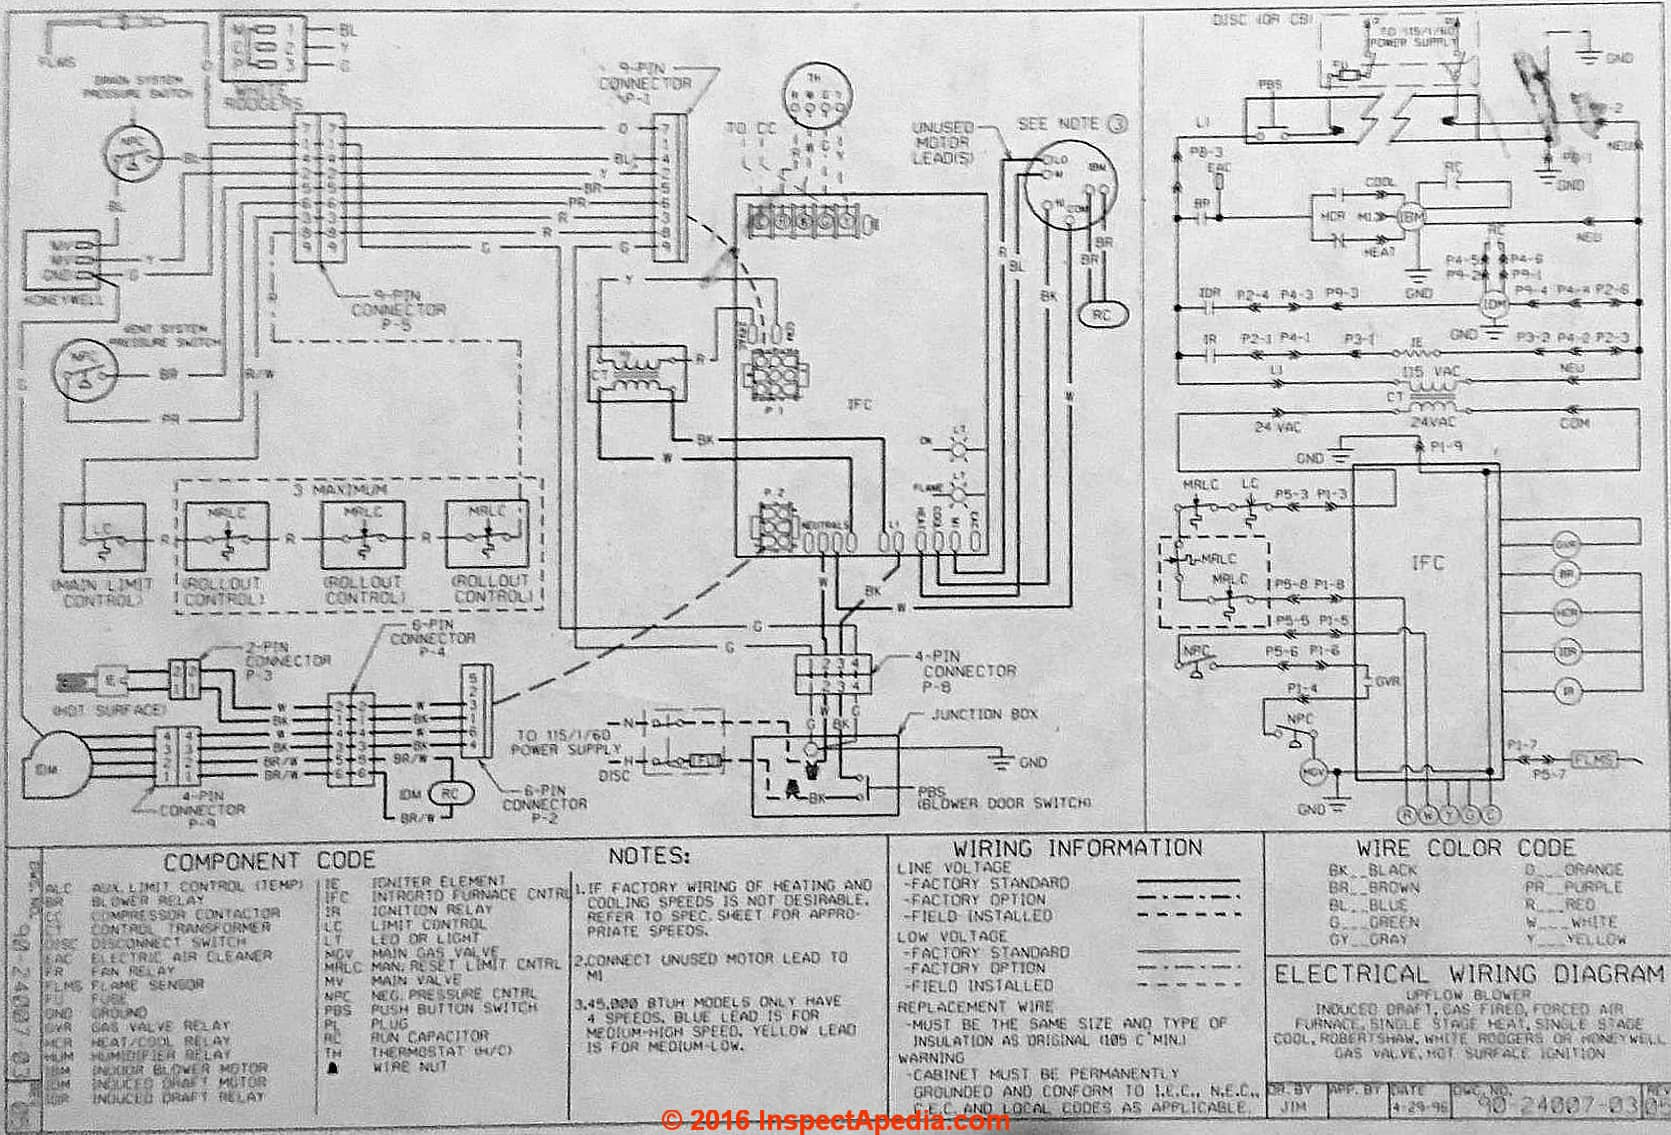 Rheem_AHU_Wiring_Diagram_IAP air conditioner heat pump faqs Rheem Thermostat Wiring at gsmportal.co